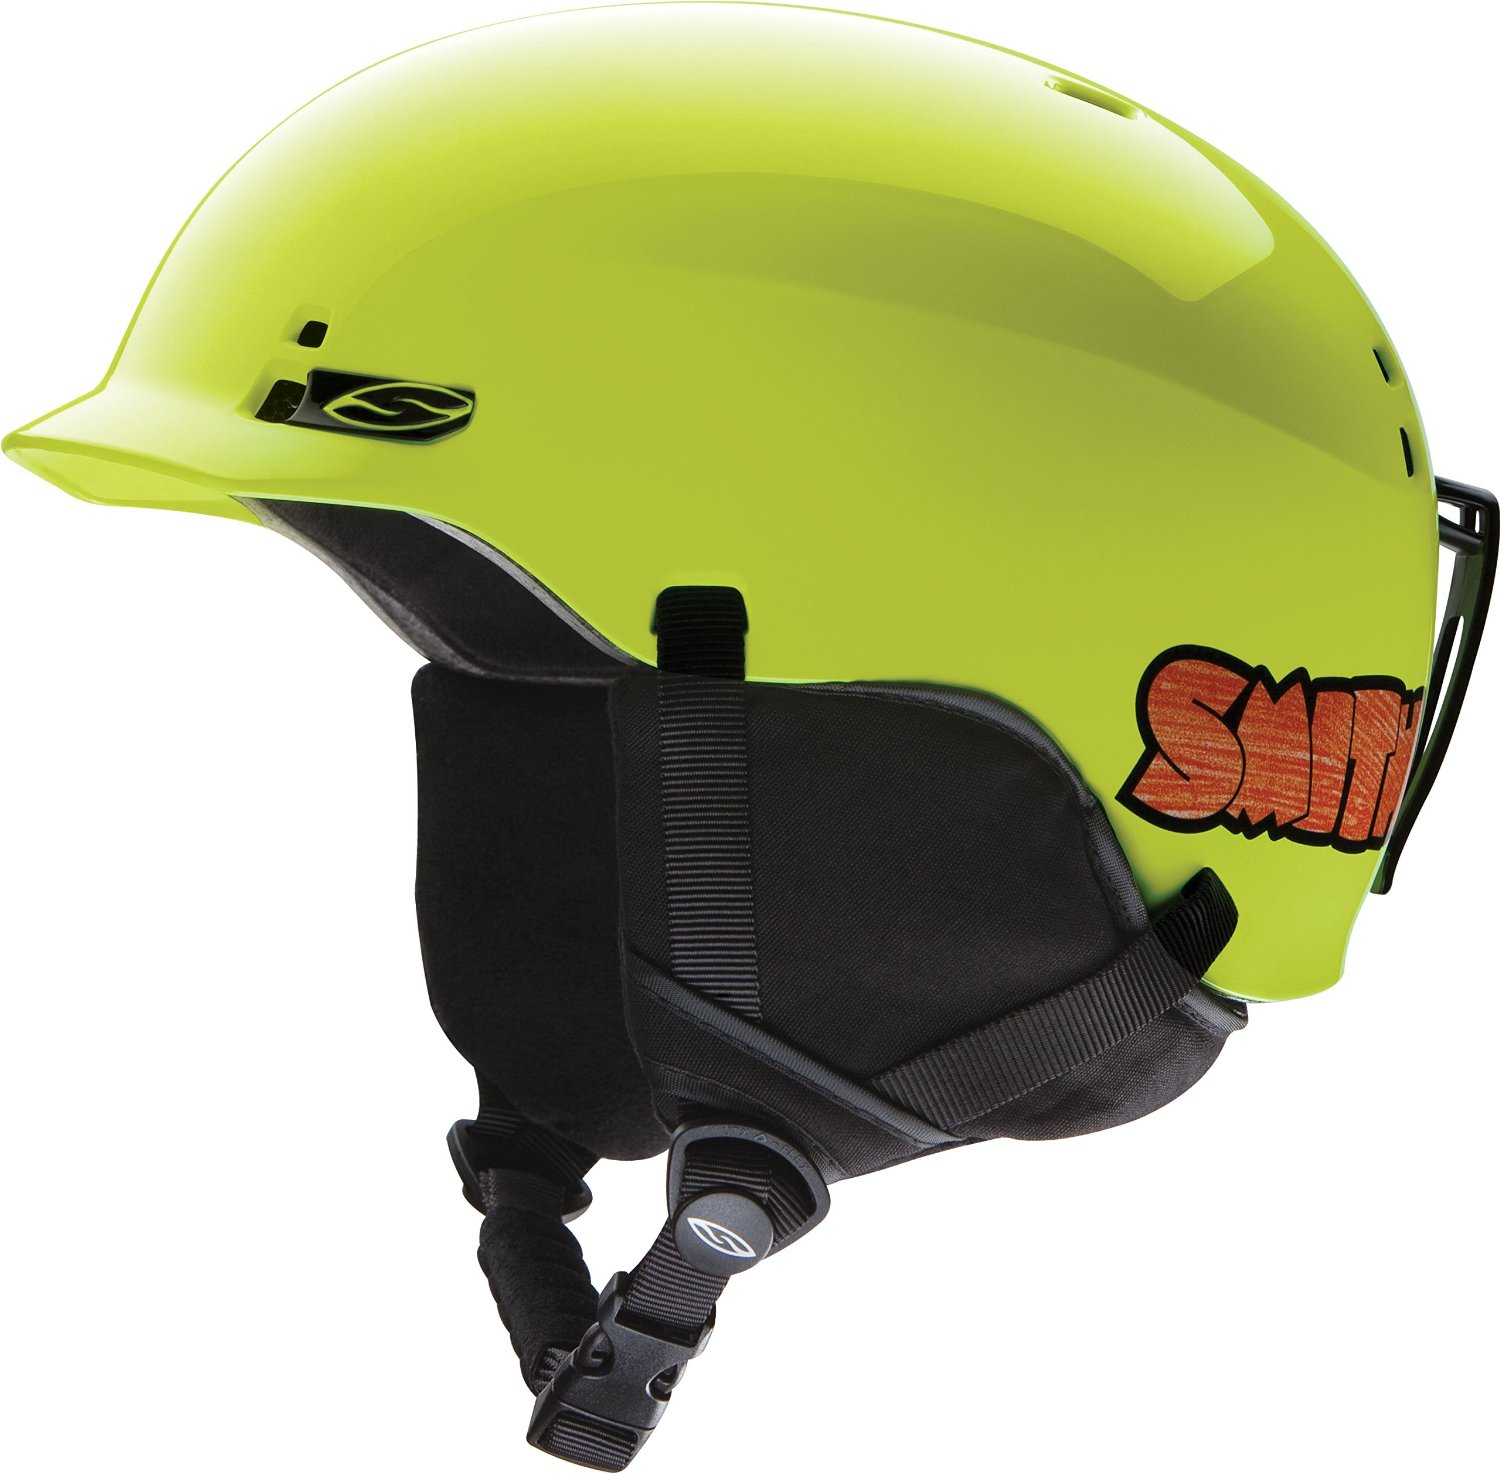 Smith Optics Kids & Youth Bicycle Helmets